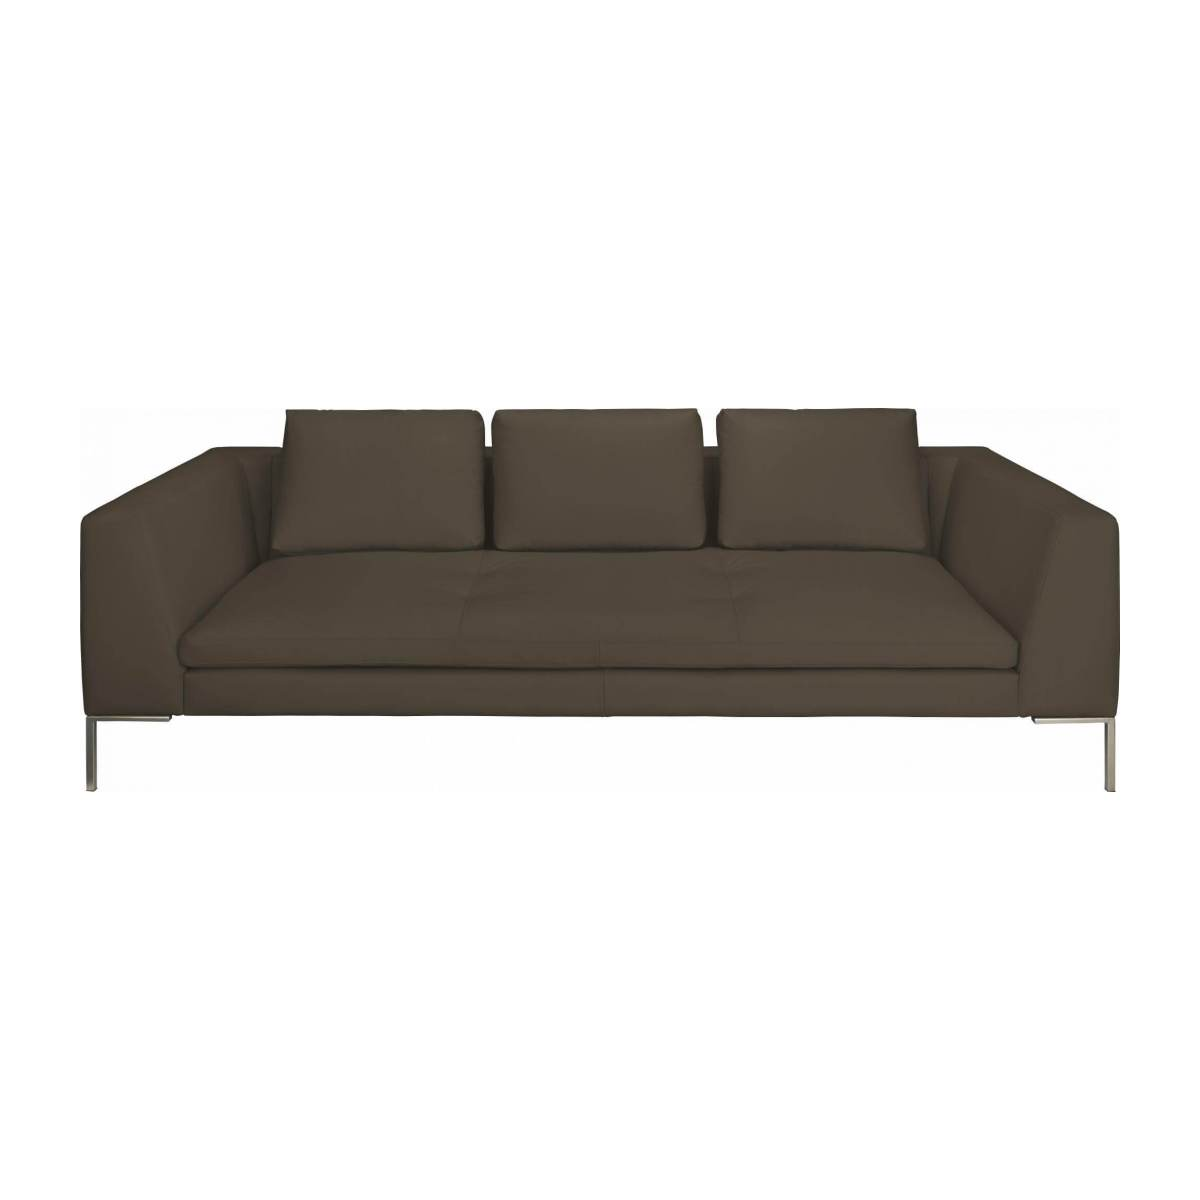 3 seater sofa in Eton veined leather, stone n°2